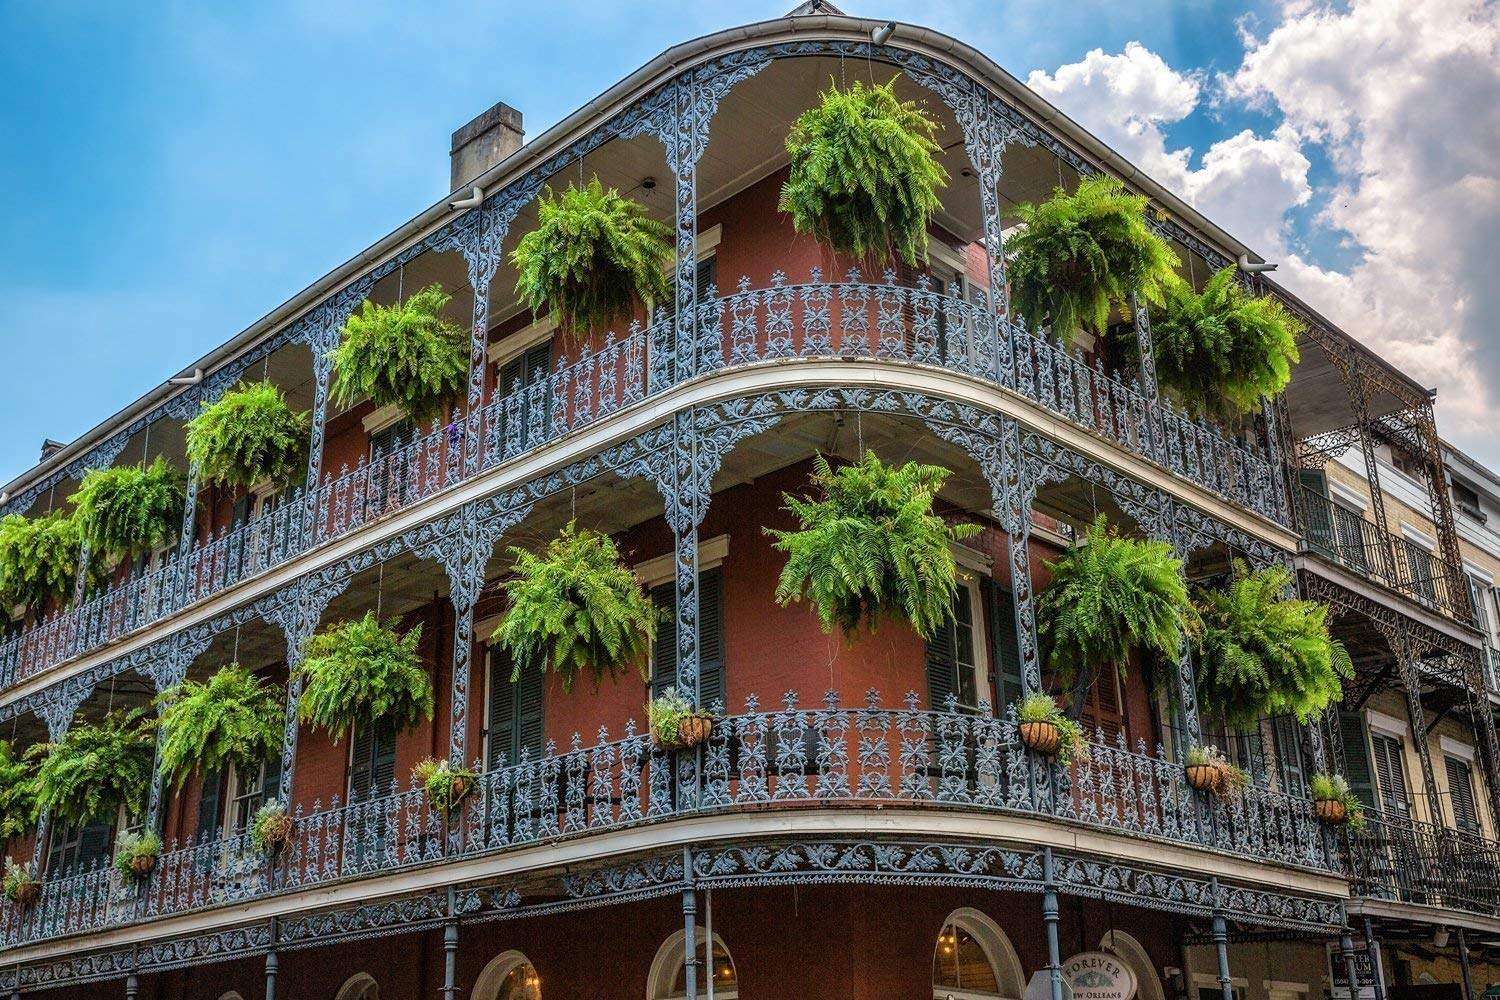 Picture of Building with Hanging Ferns in French Quarter Southern Louisiana Decor 5x7 to 40x60 New Orleans Photography Art Print